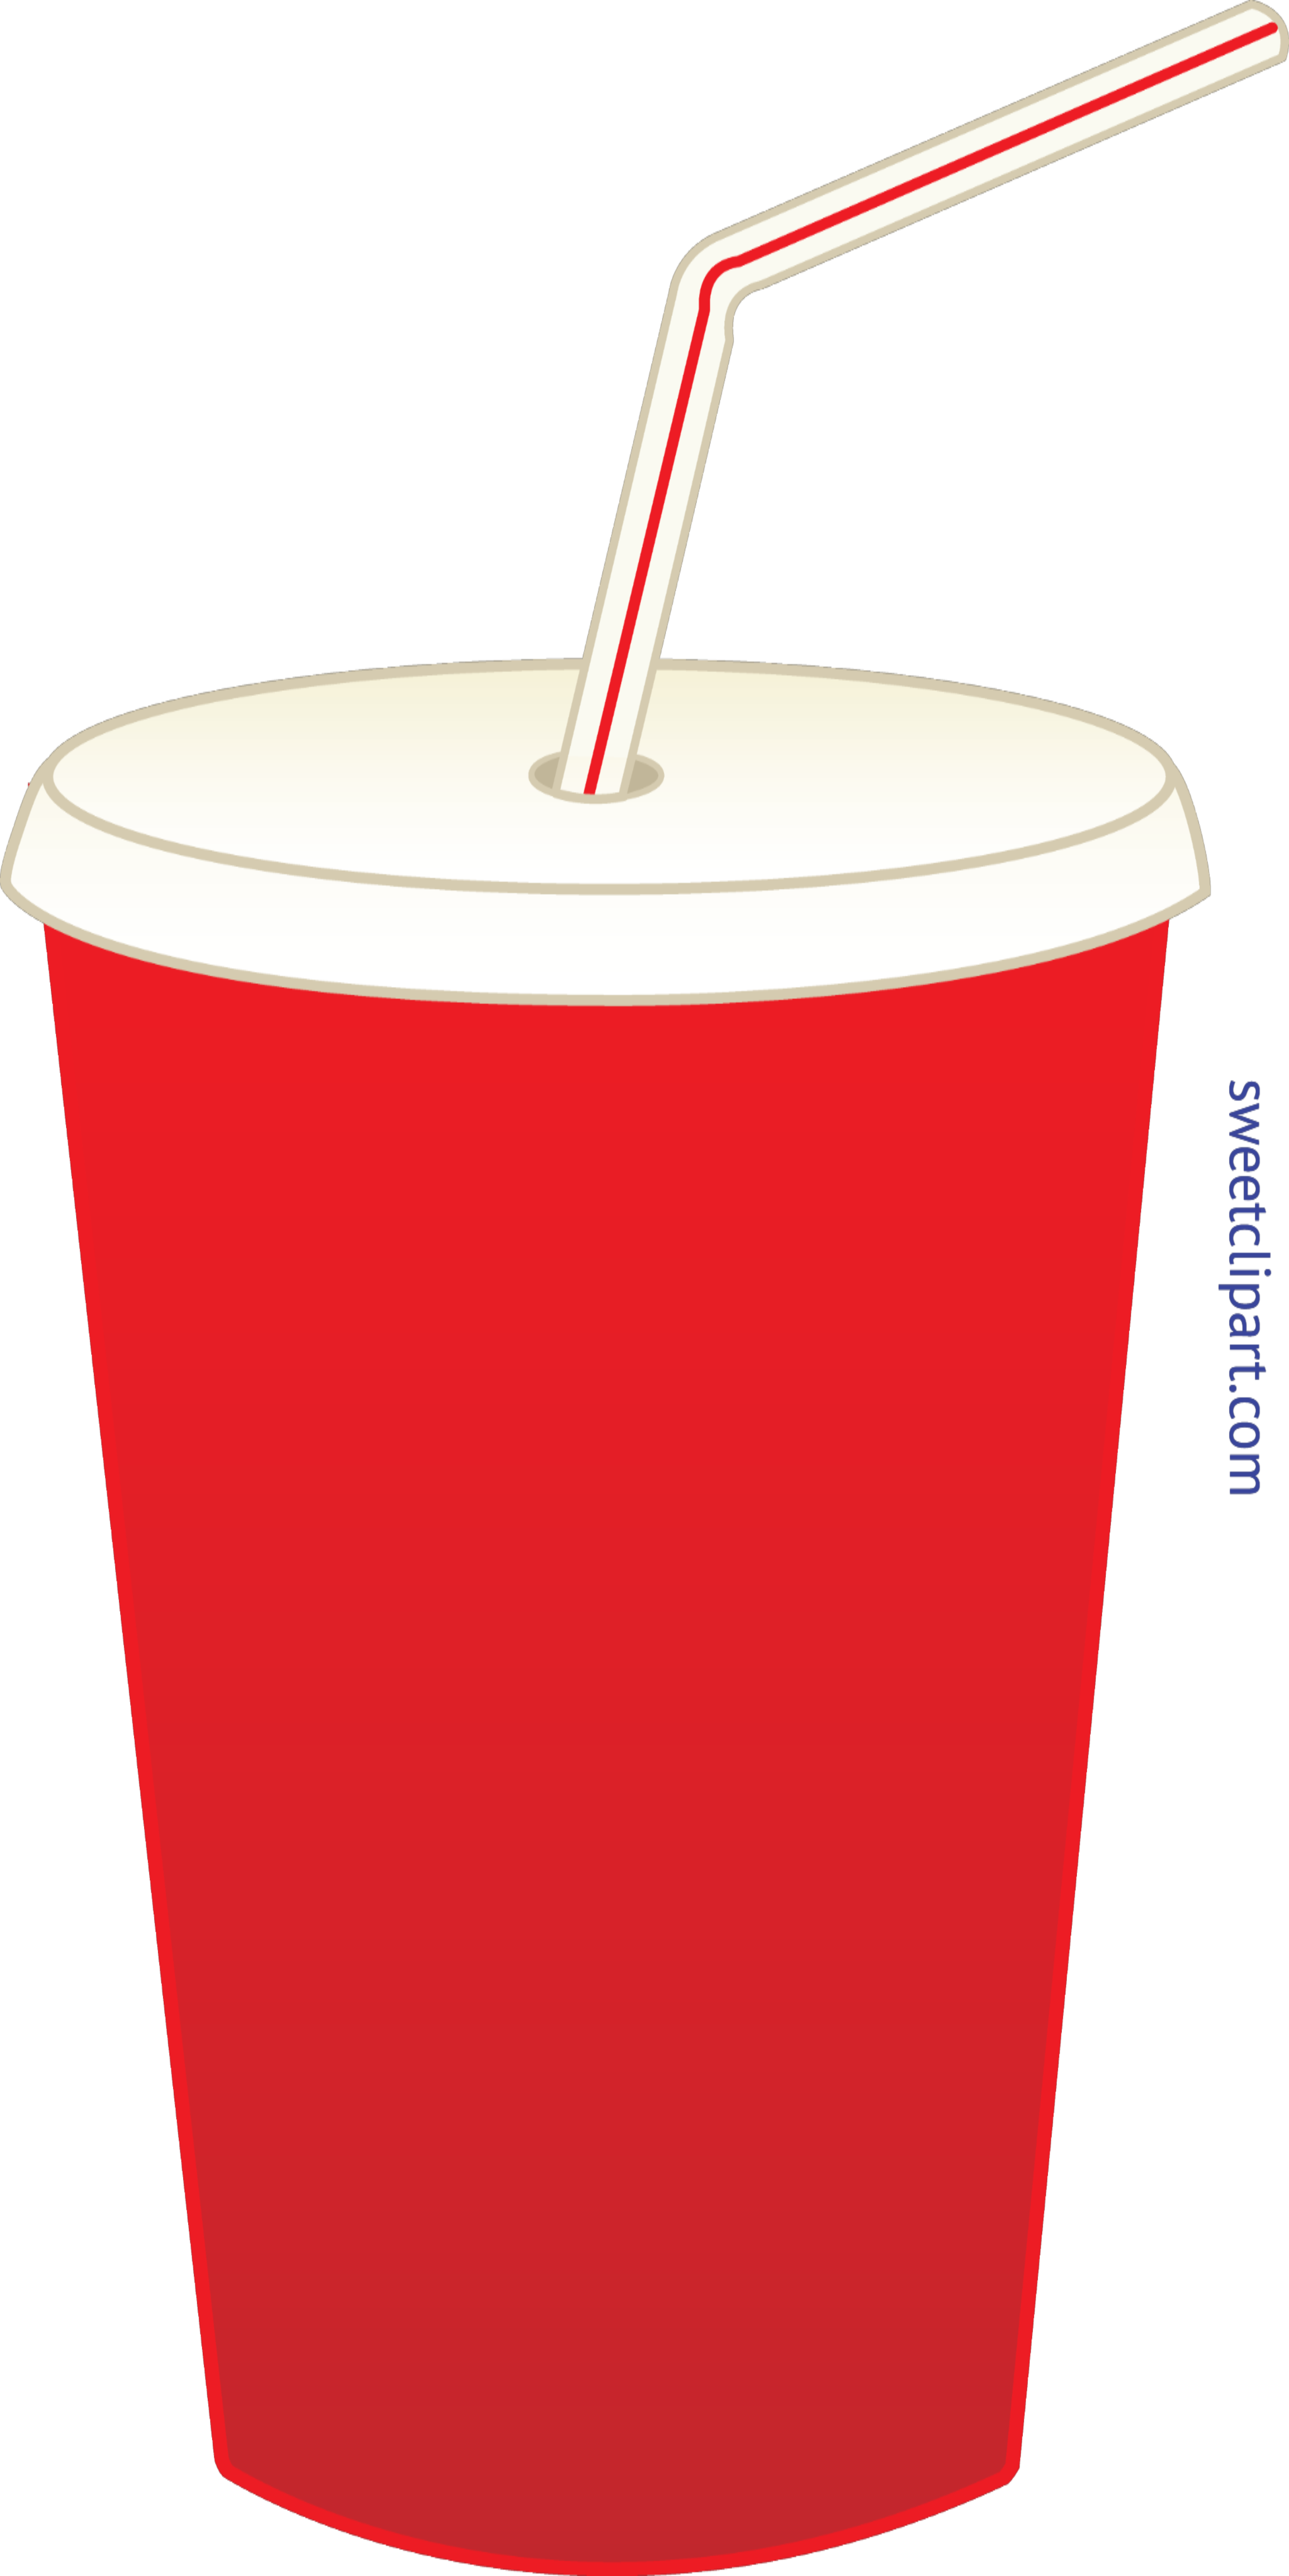 Soda pop in cup. Clipart science red